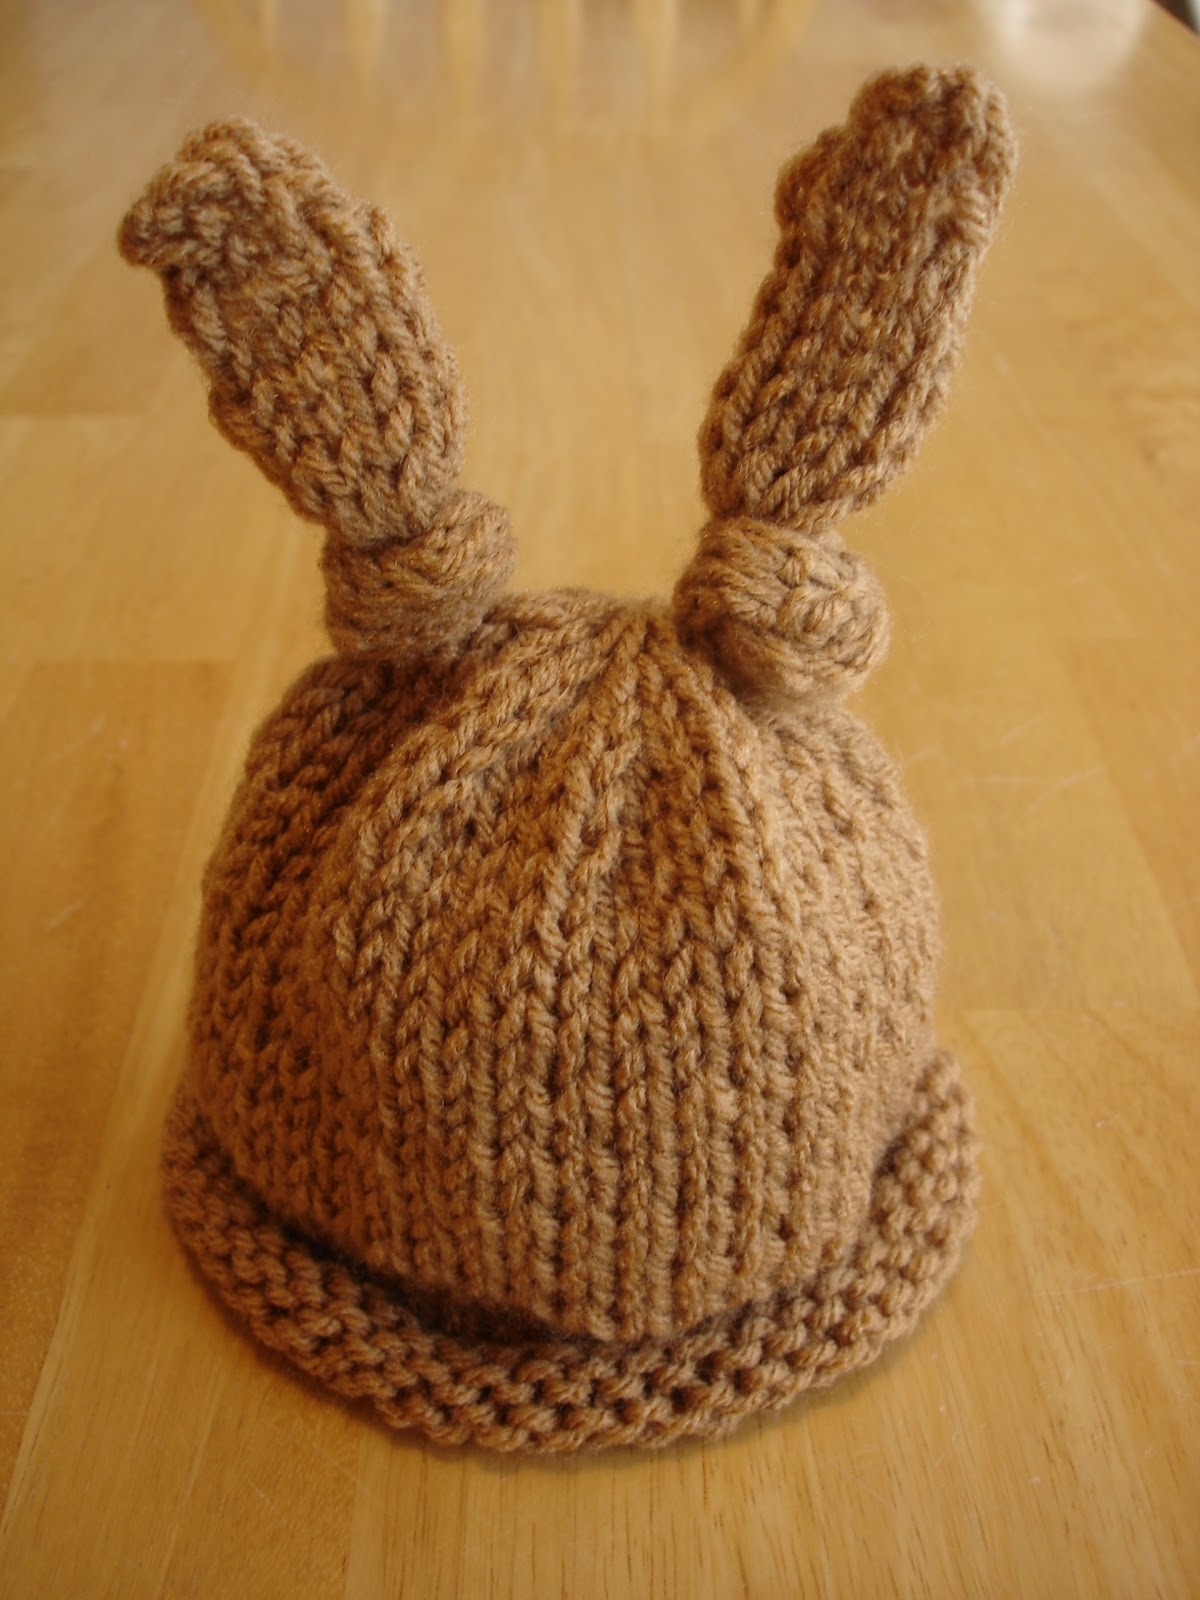 Knitting Pattern Hat For Newborn : Fiber Flux: Free Knitting Pattern...Baby Bunny Newborn or Preemie Hat!